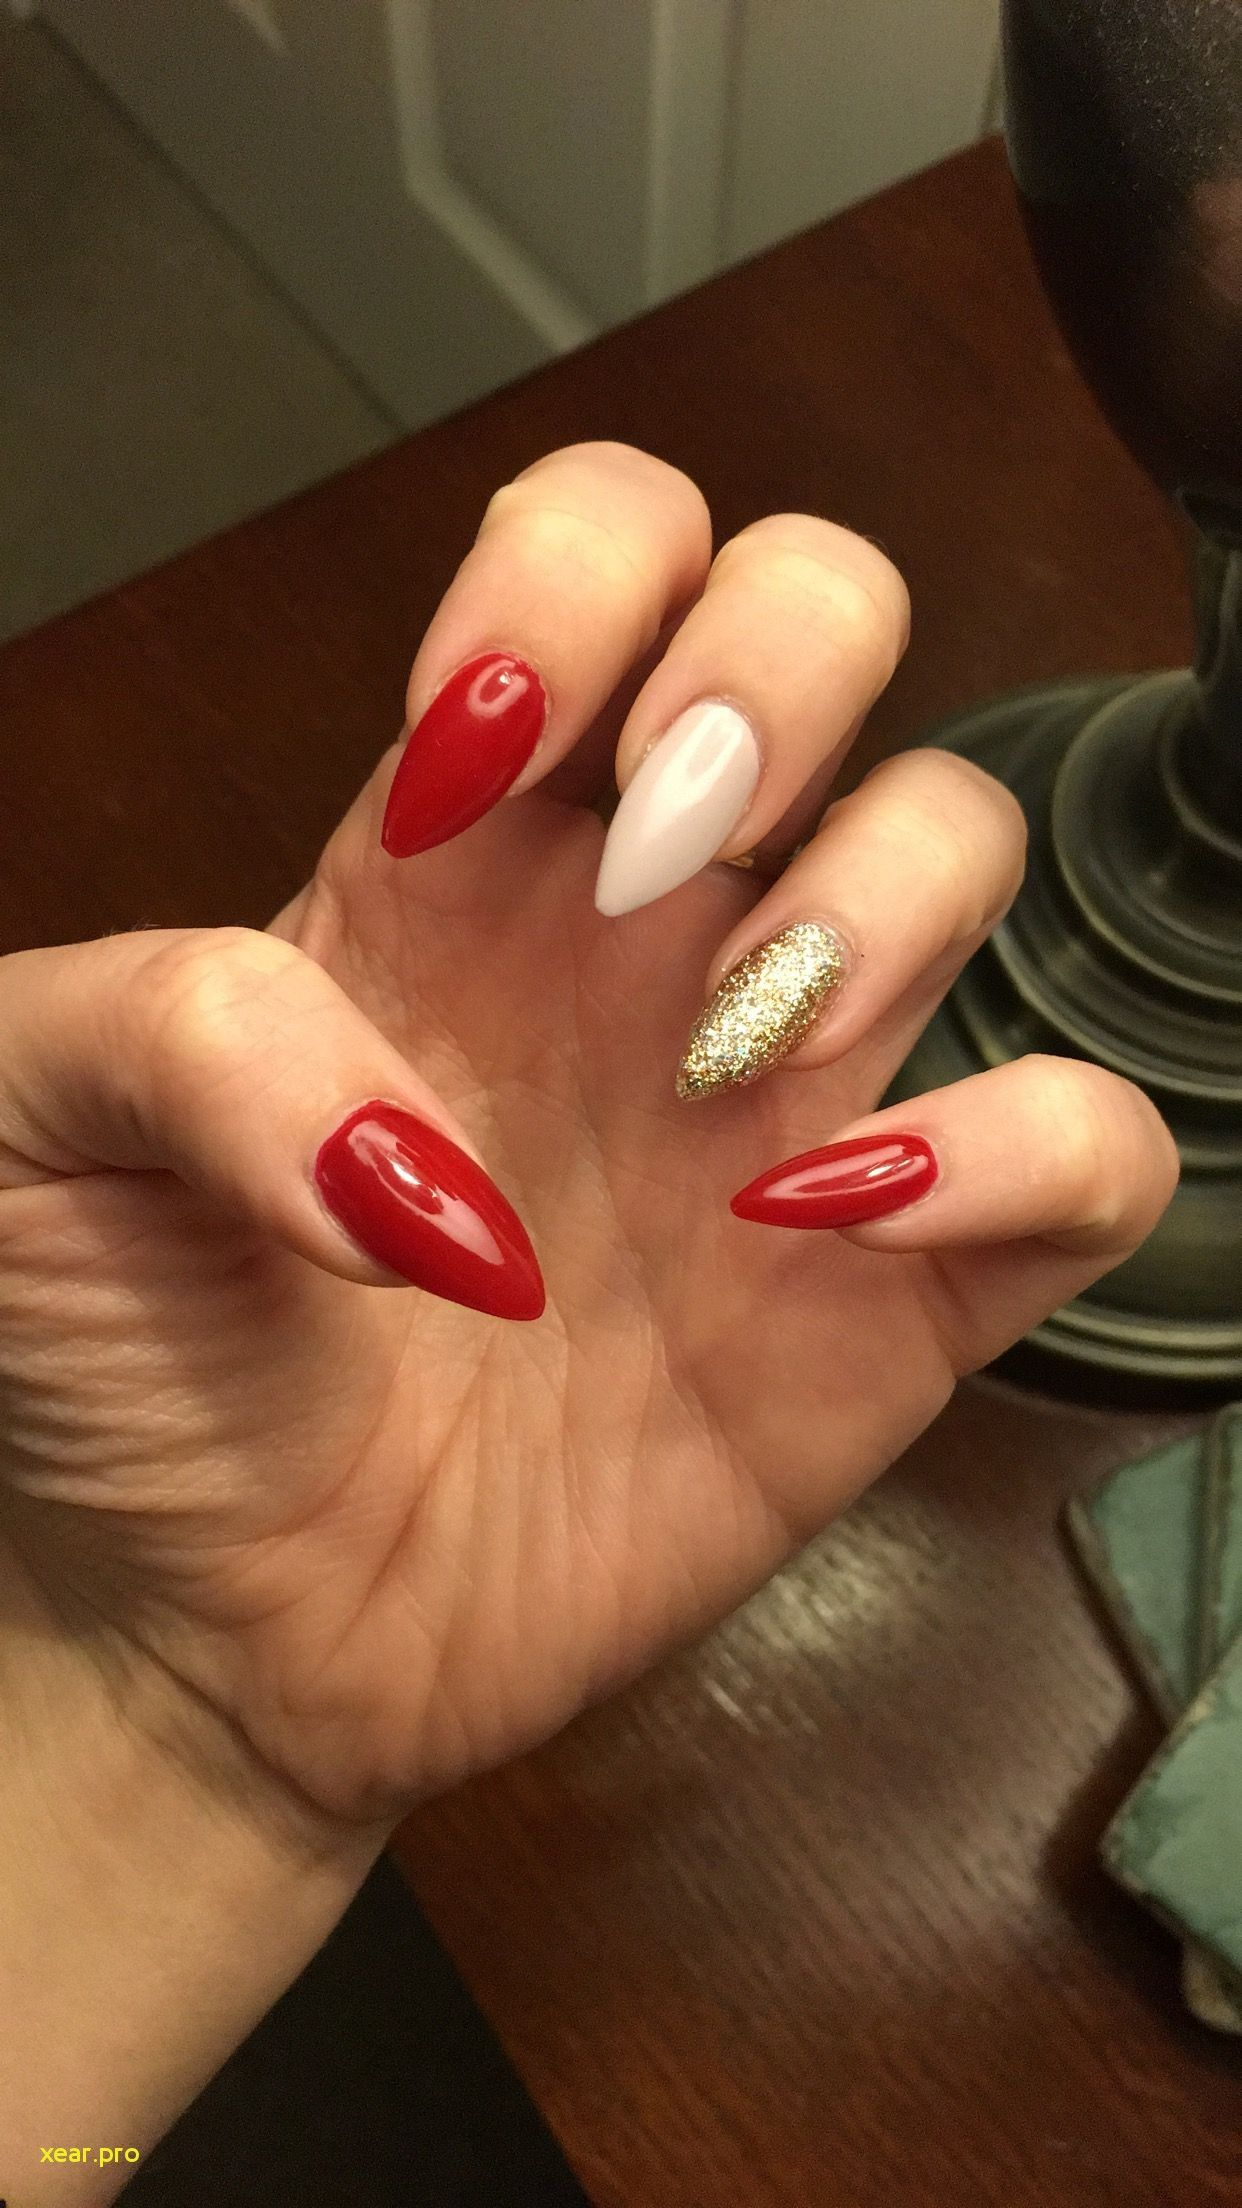 Nails For Red Dress : nails, dress, Lovely, Color, Dress-Lovely, Dress, Allowed, Acrylic, Nails,, Nails